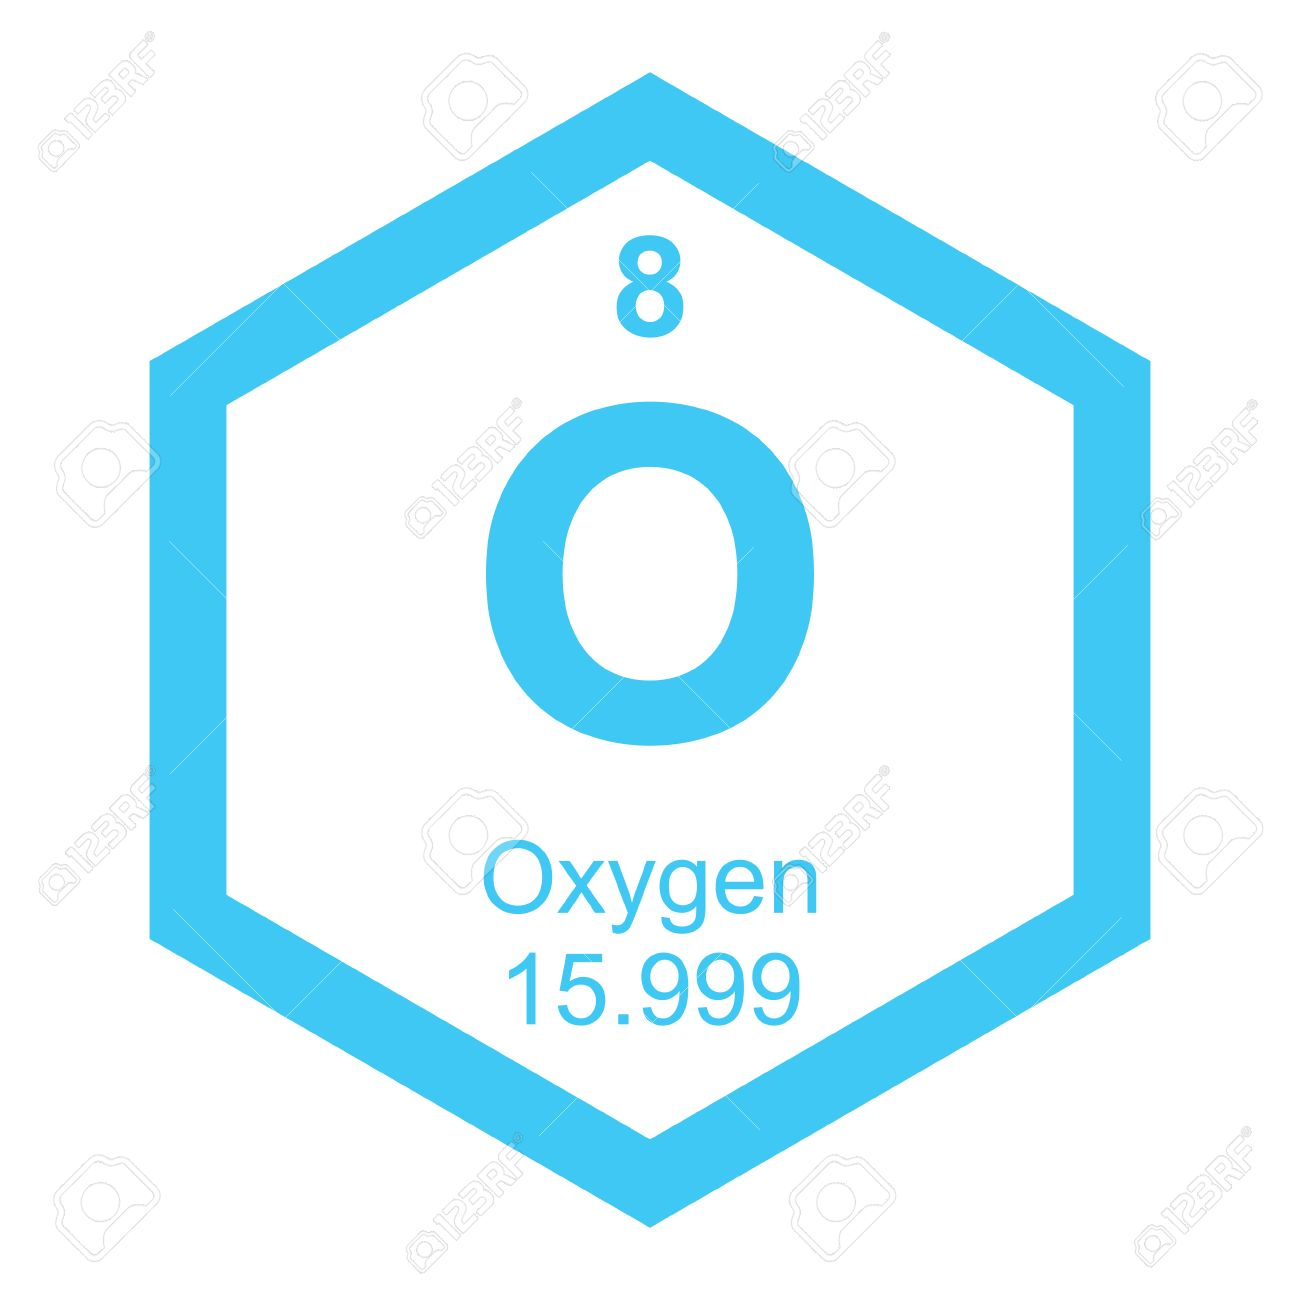 Oxygen symbol periodic table image collections periodic table images oxygen facts periodic table choice image periodic table images oxygen symbol periodic table choice image periodic gamestrikefo Images